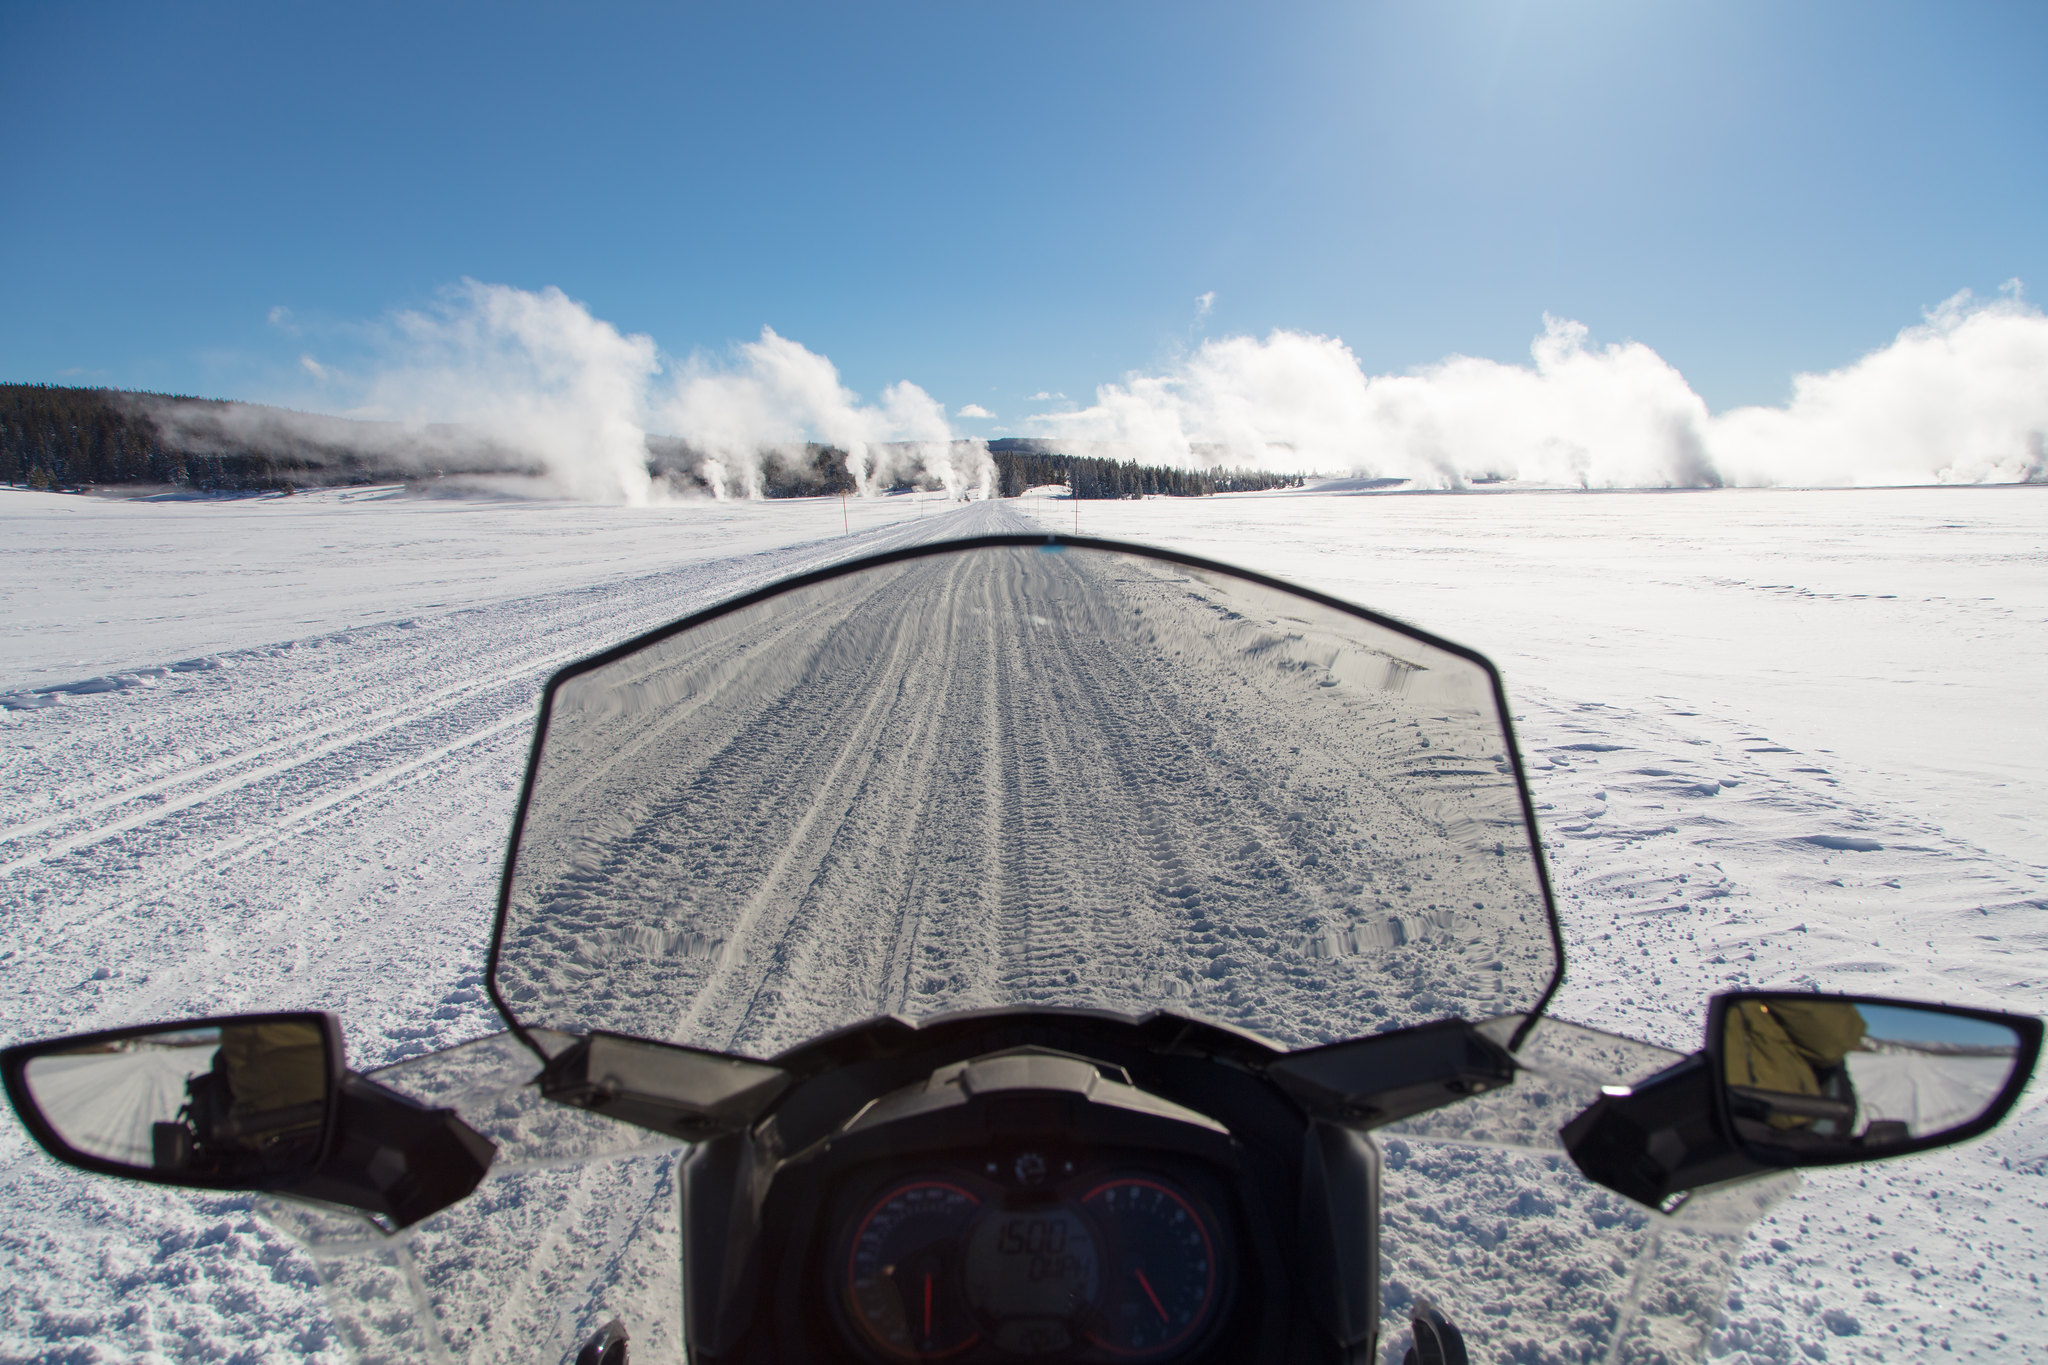 view from a snowmobile on a winter road